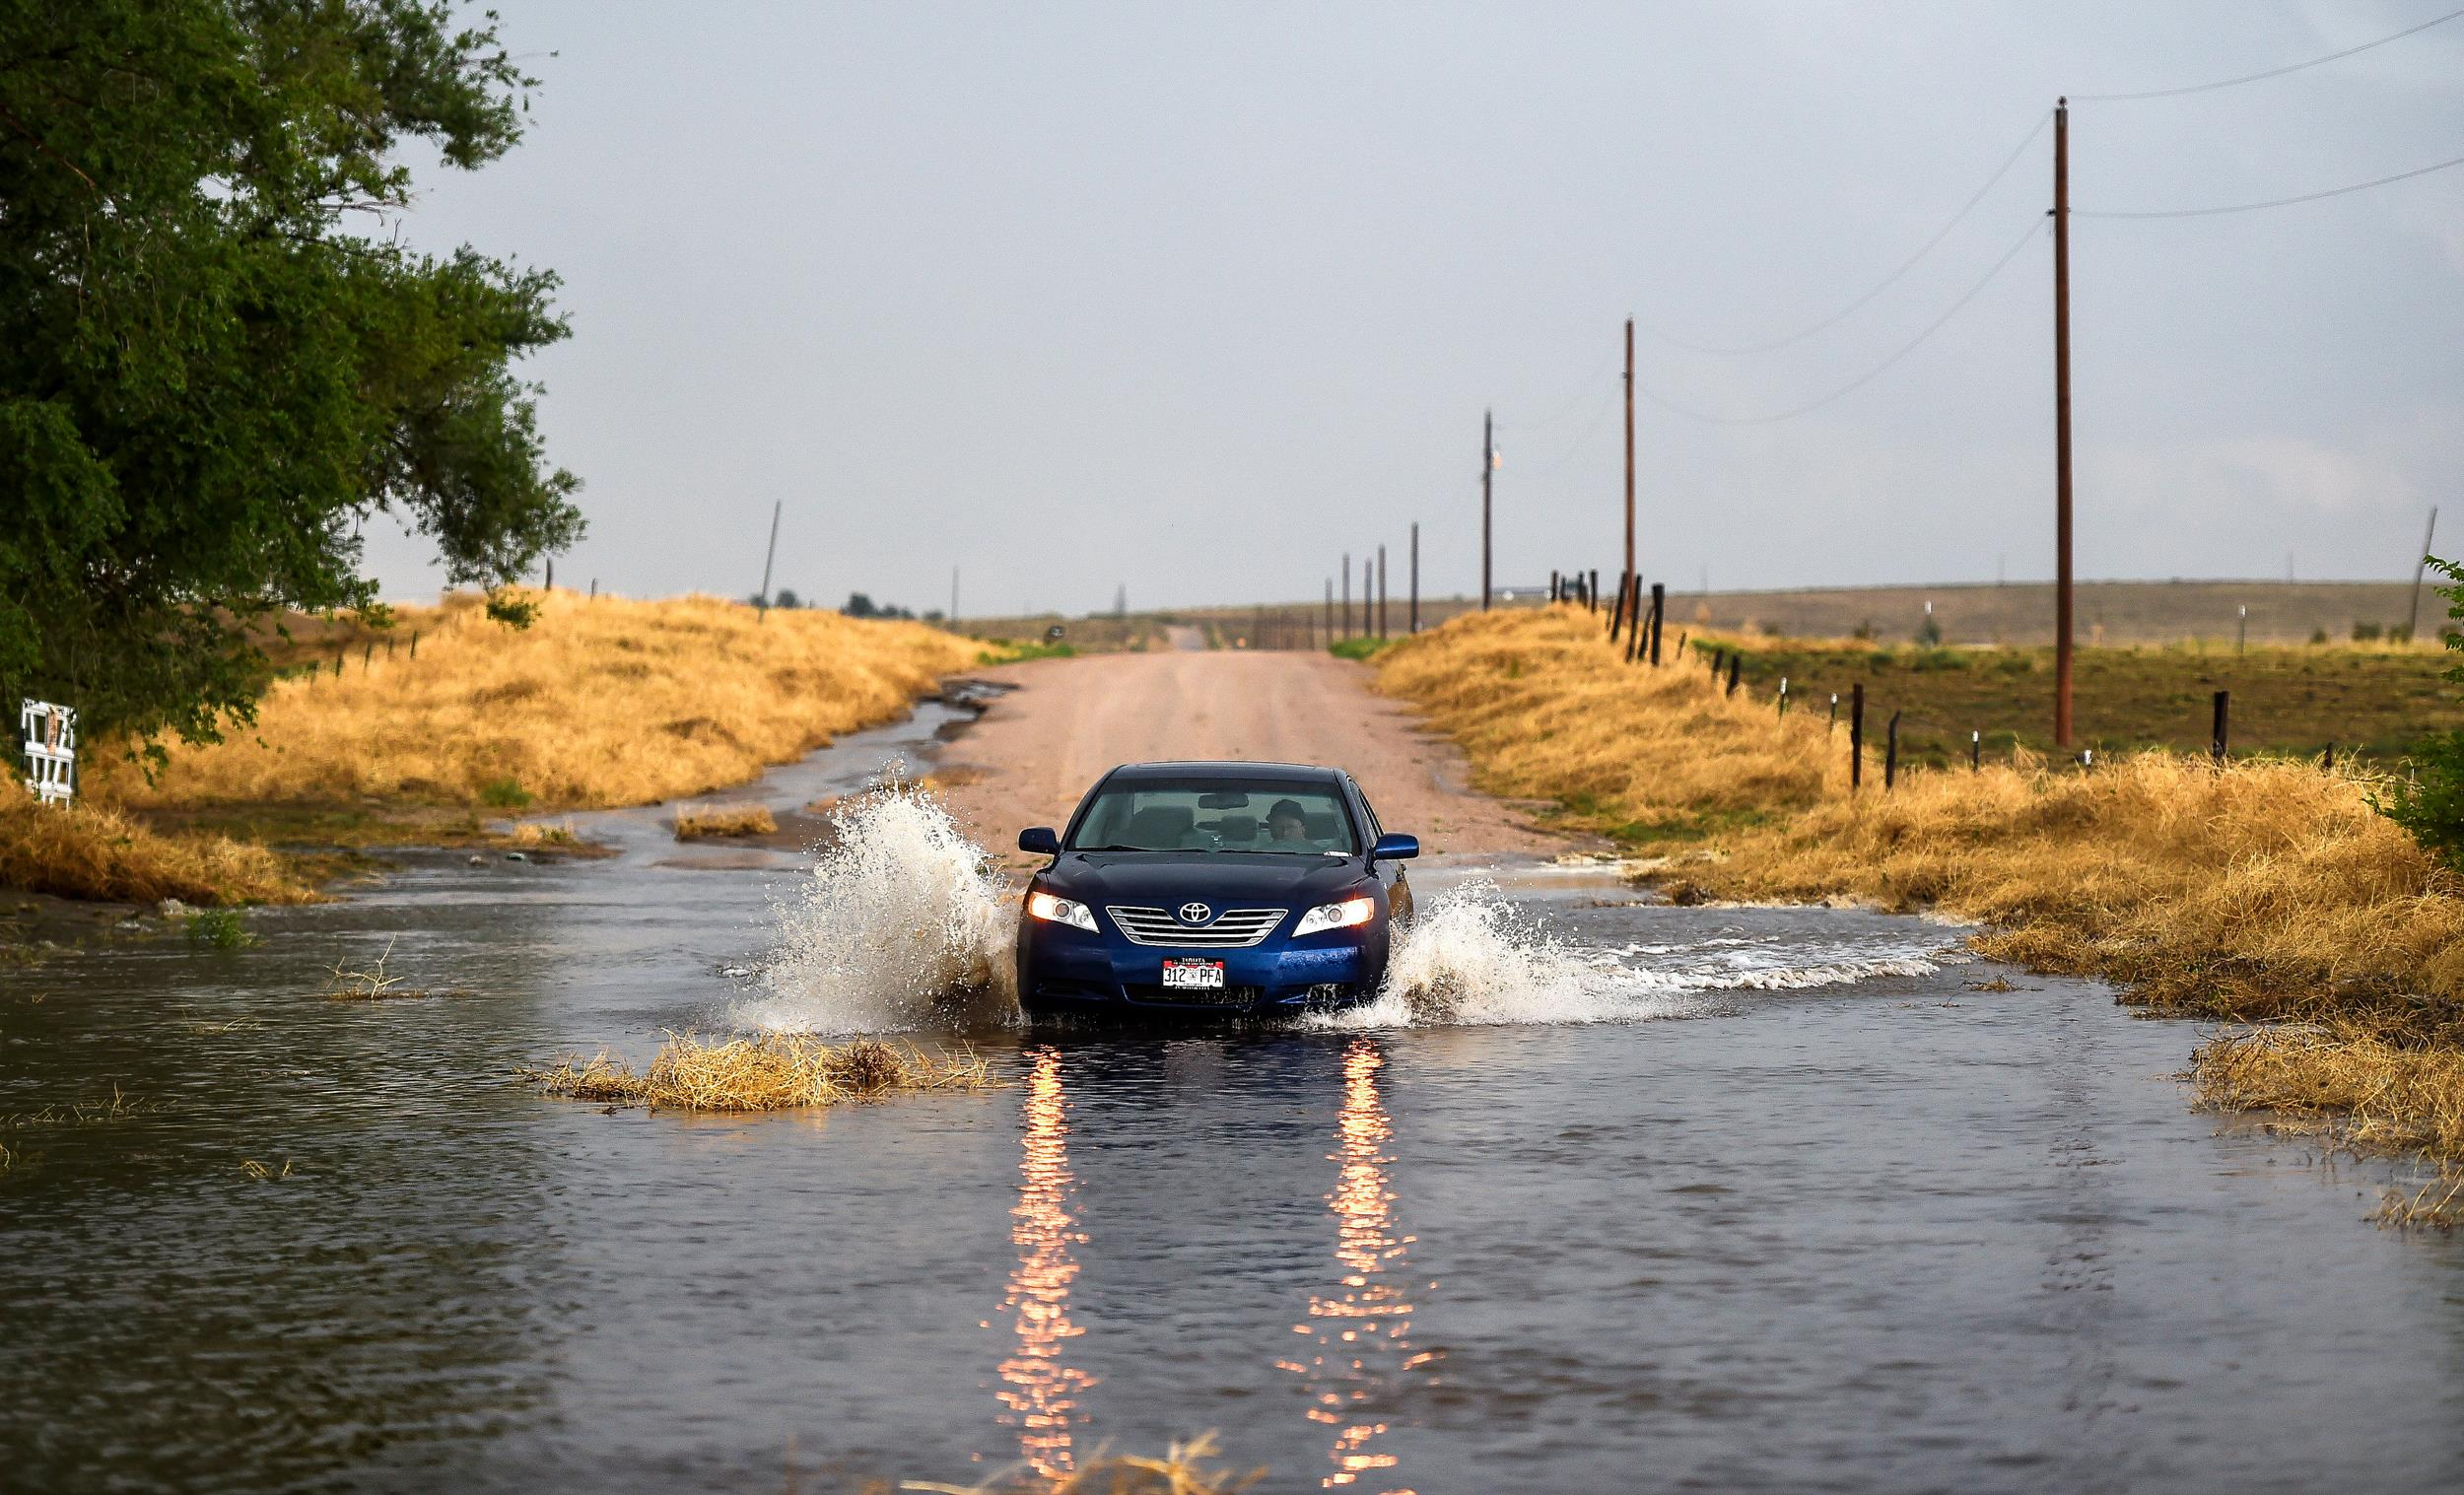 Image: A car enters a flooded portion a road following a storm